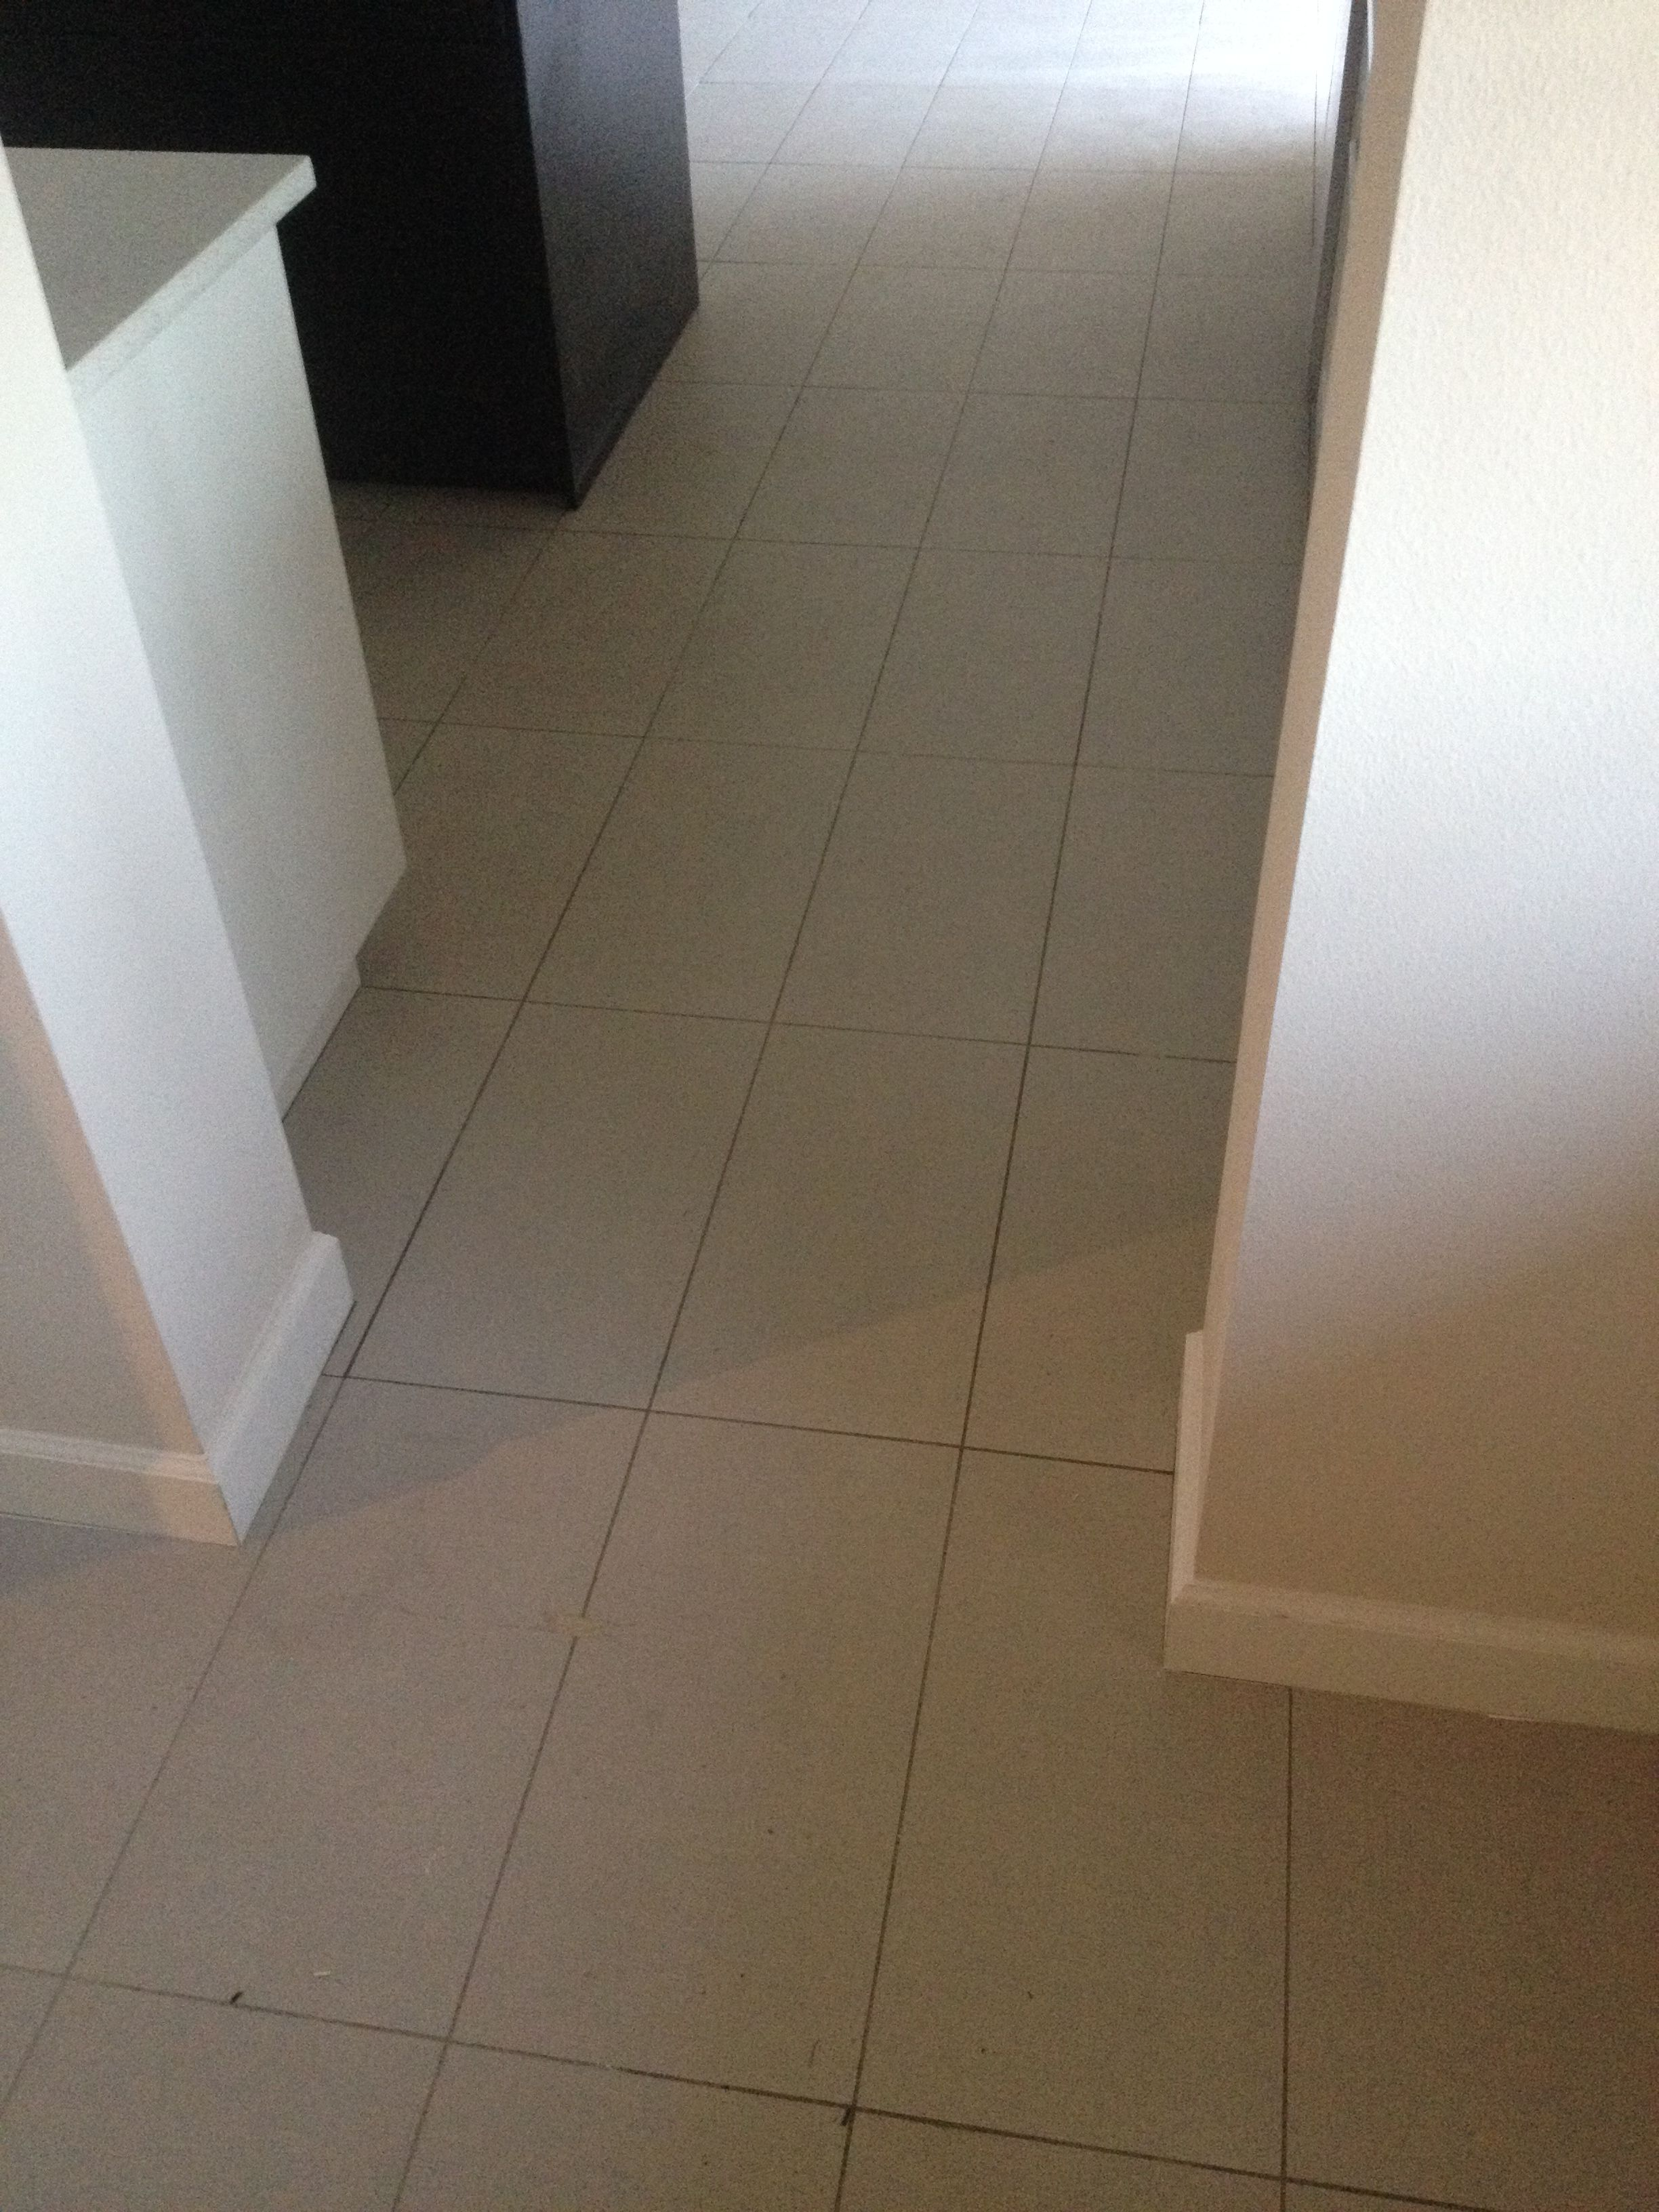 12 X 24 Porcelain Tile Straight Lay Stack Bond Tile Floor 12x24 Tile Tiled Hallway